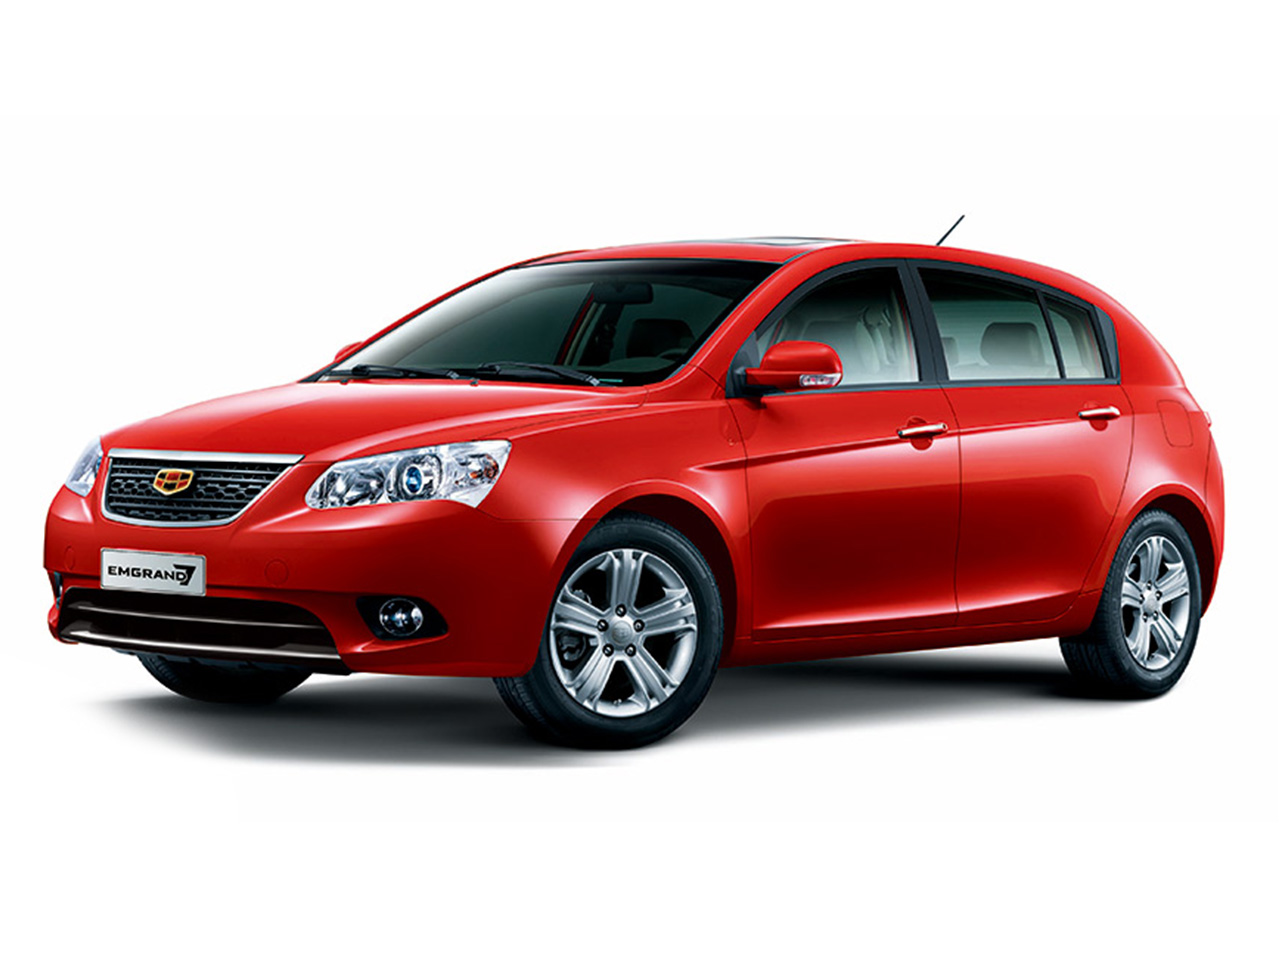 Geely emgrand 7 hb 2017